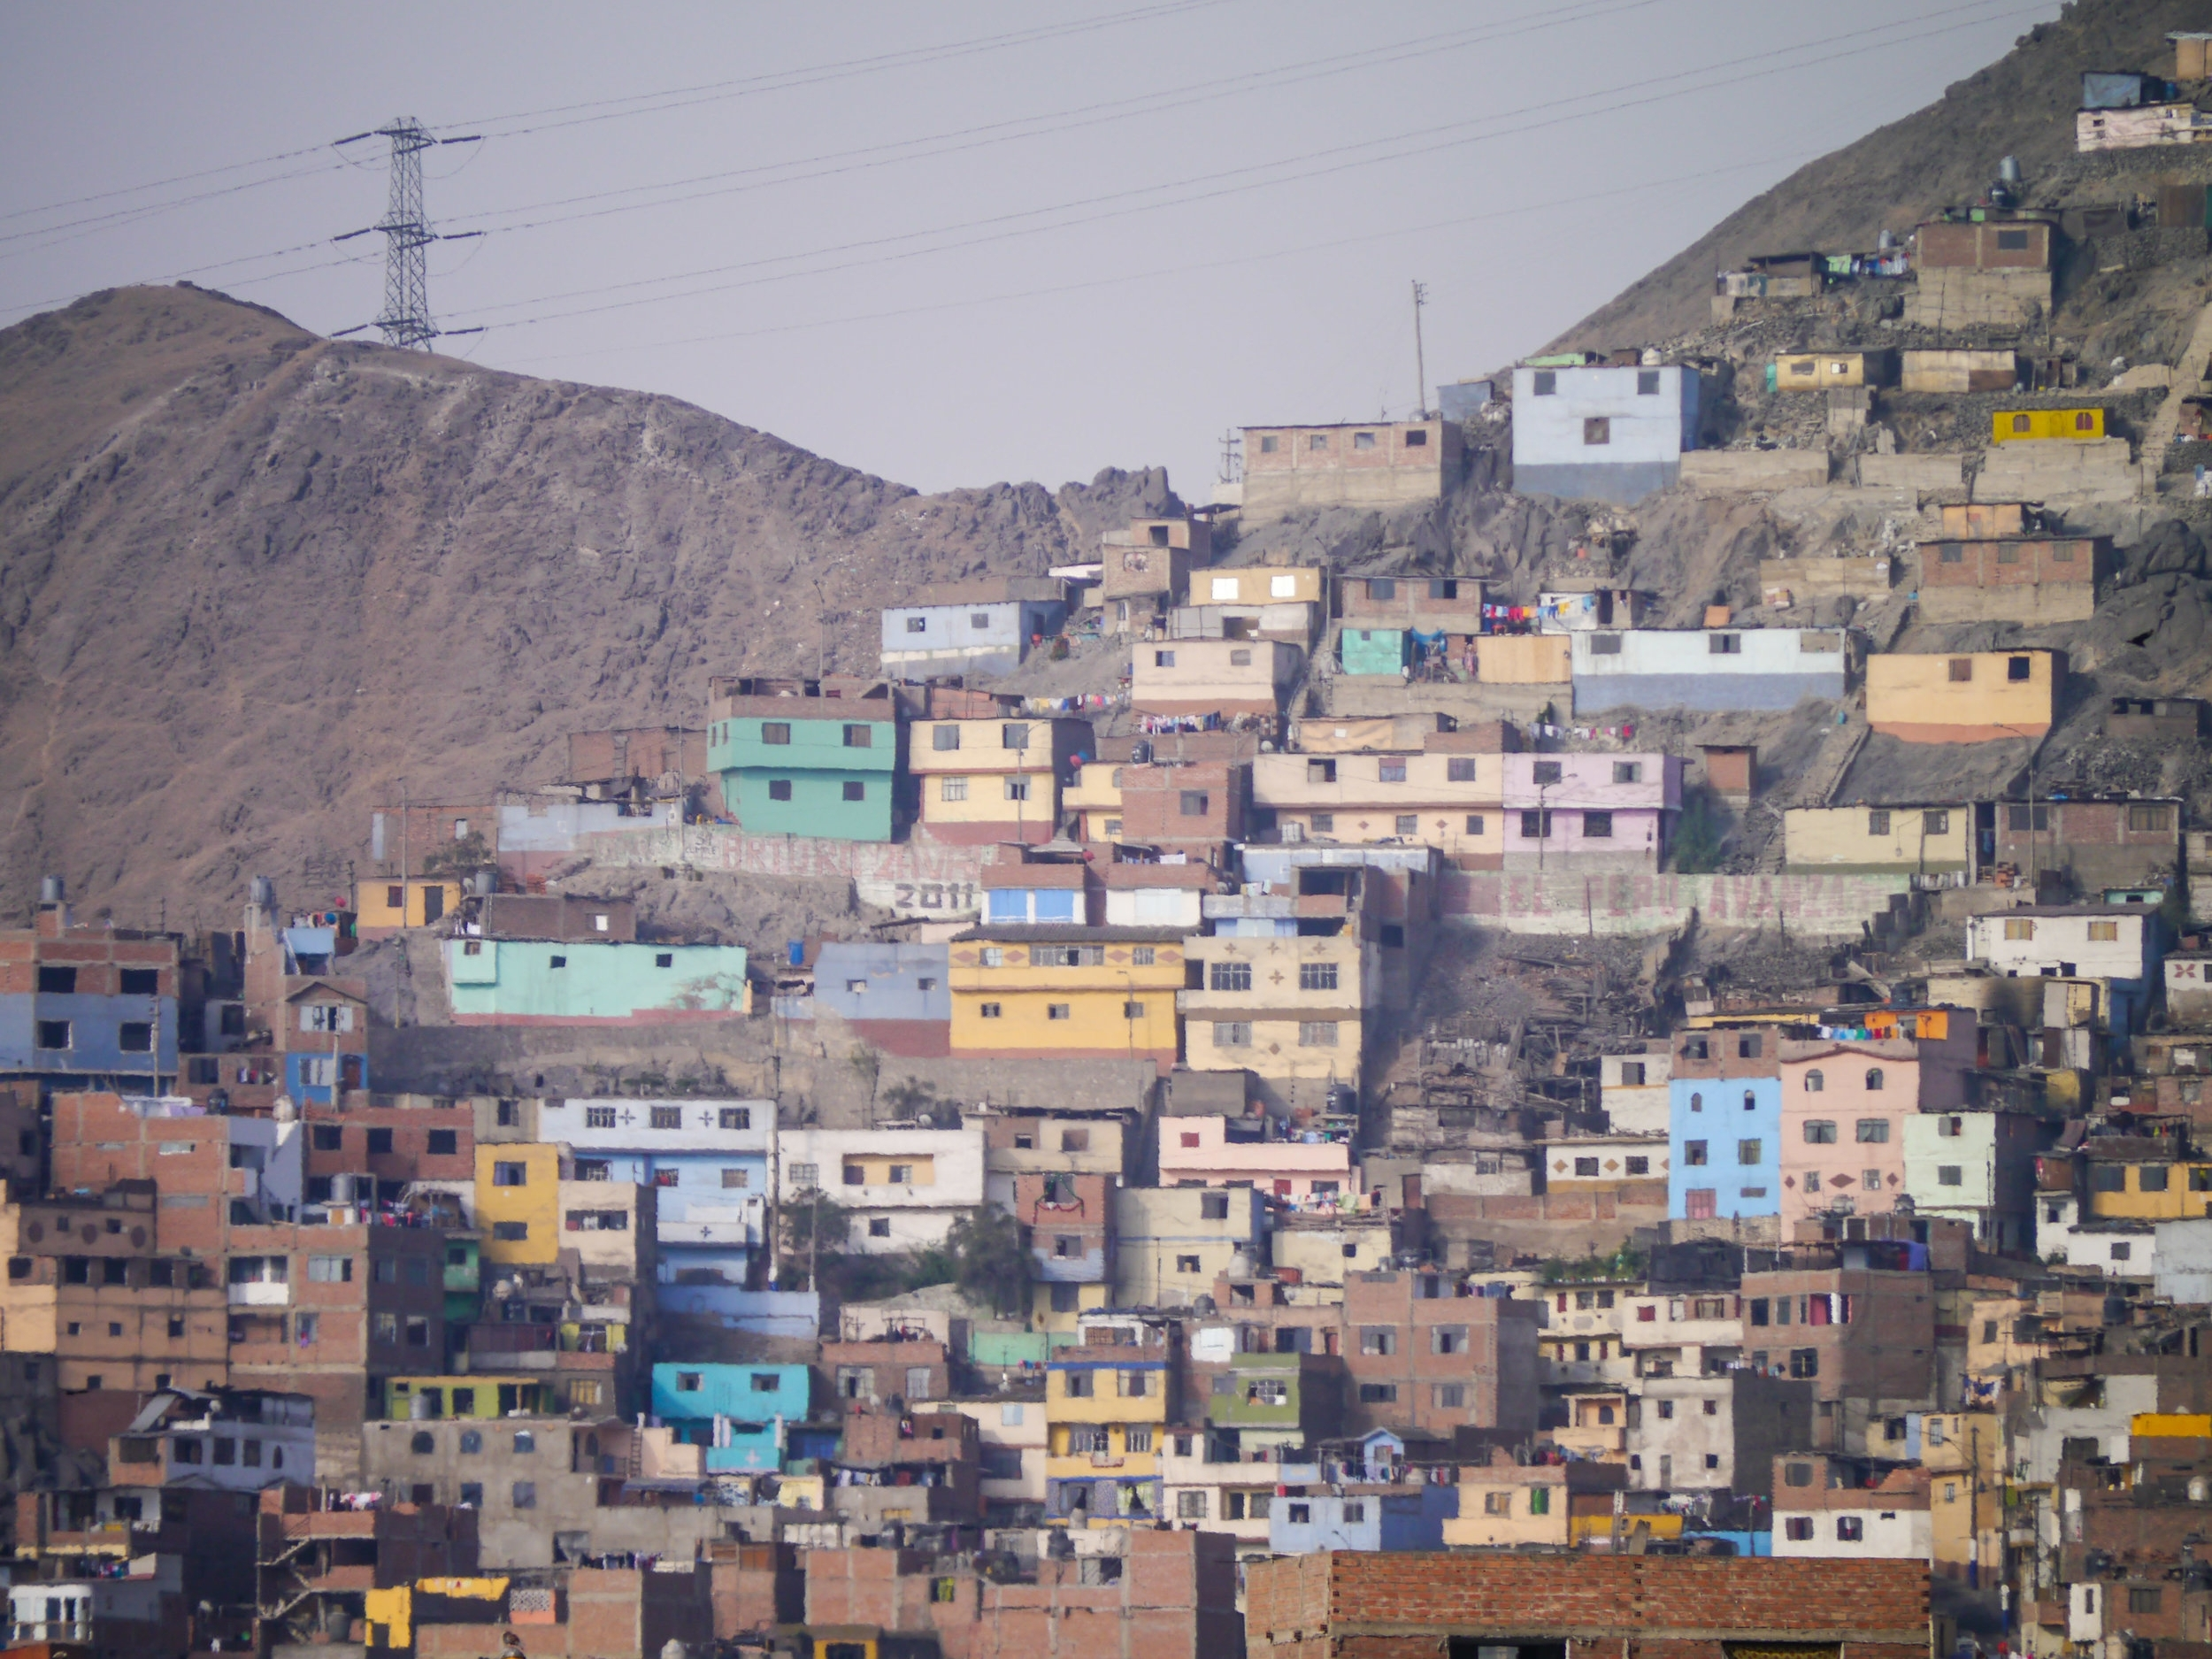 Peru Mission - Peru Mission is in its first year of service. On this mission, a group of college students will spend their spring break serving the Peruvians who live in the shantytowns in the mountains of Lima. Service will include working alongside the locals to improve the safety and ease of access to their homes and also meeting their spiritual needs in any way possible. Each day begins with prayer and ends with Mass, and the missionary-students will spend one day of pilgrimage in Lima in order to gain a better understanding of and appreciation for the city and culture they are serving.